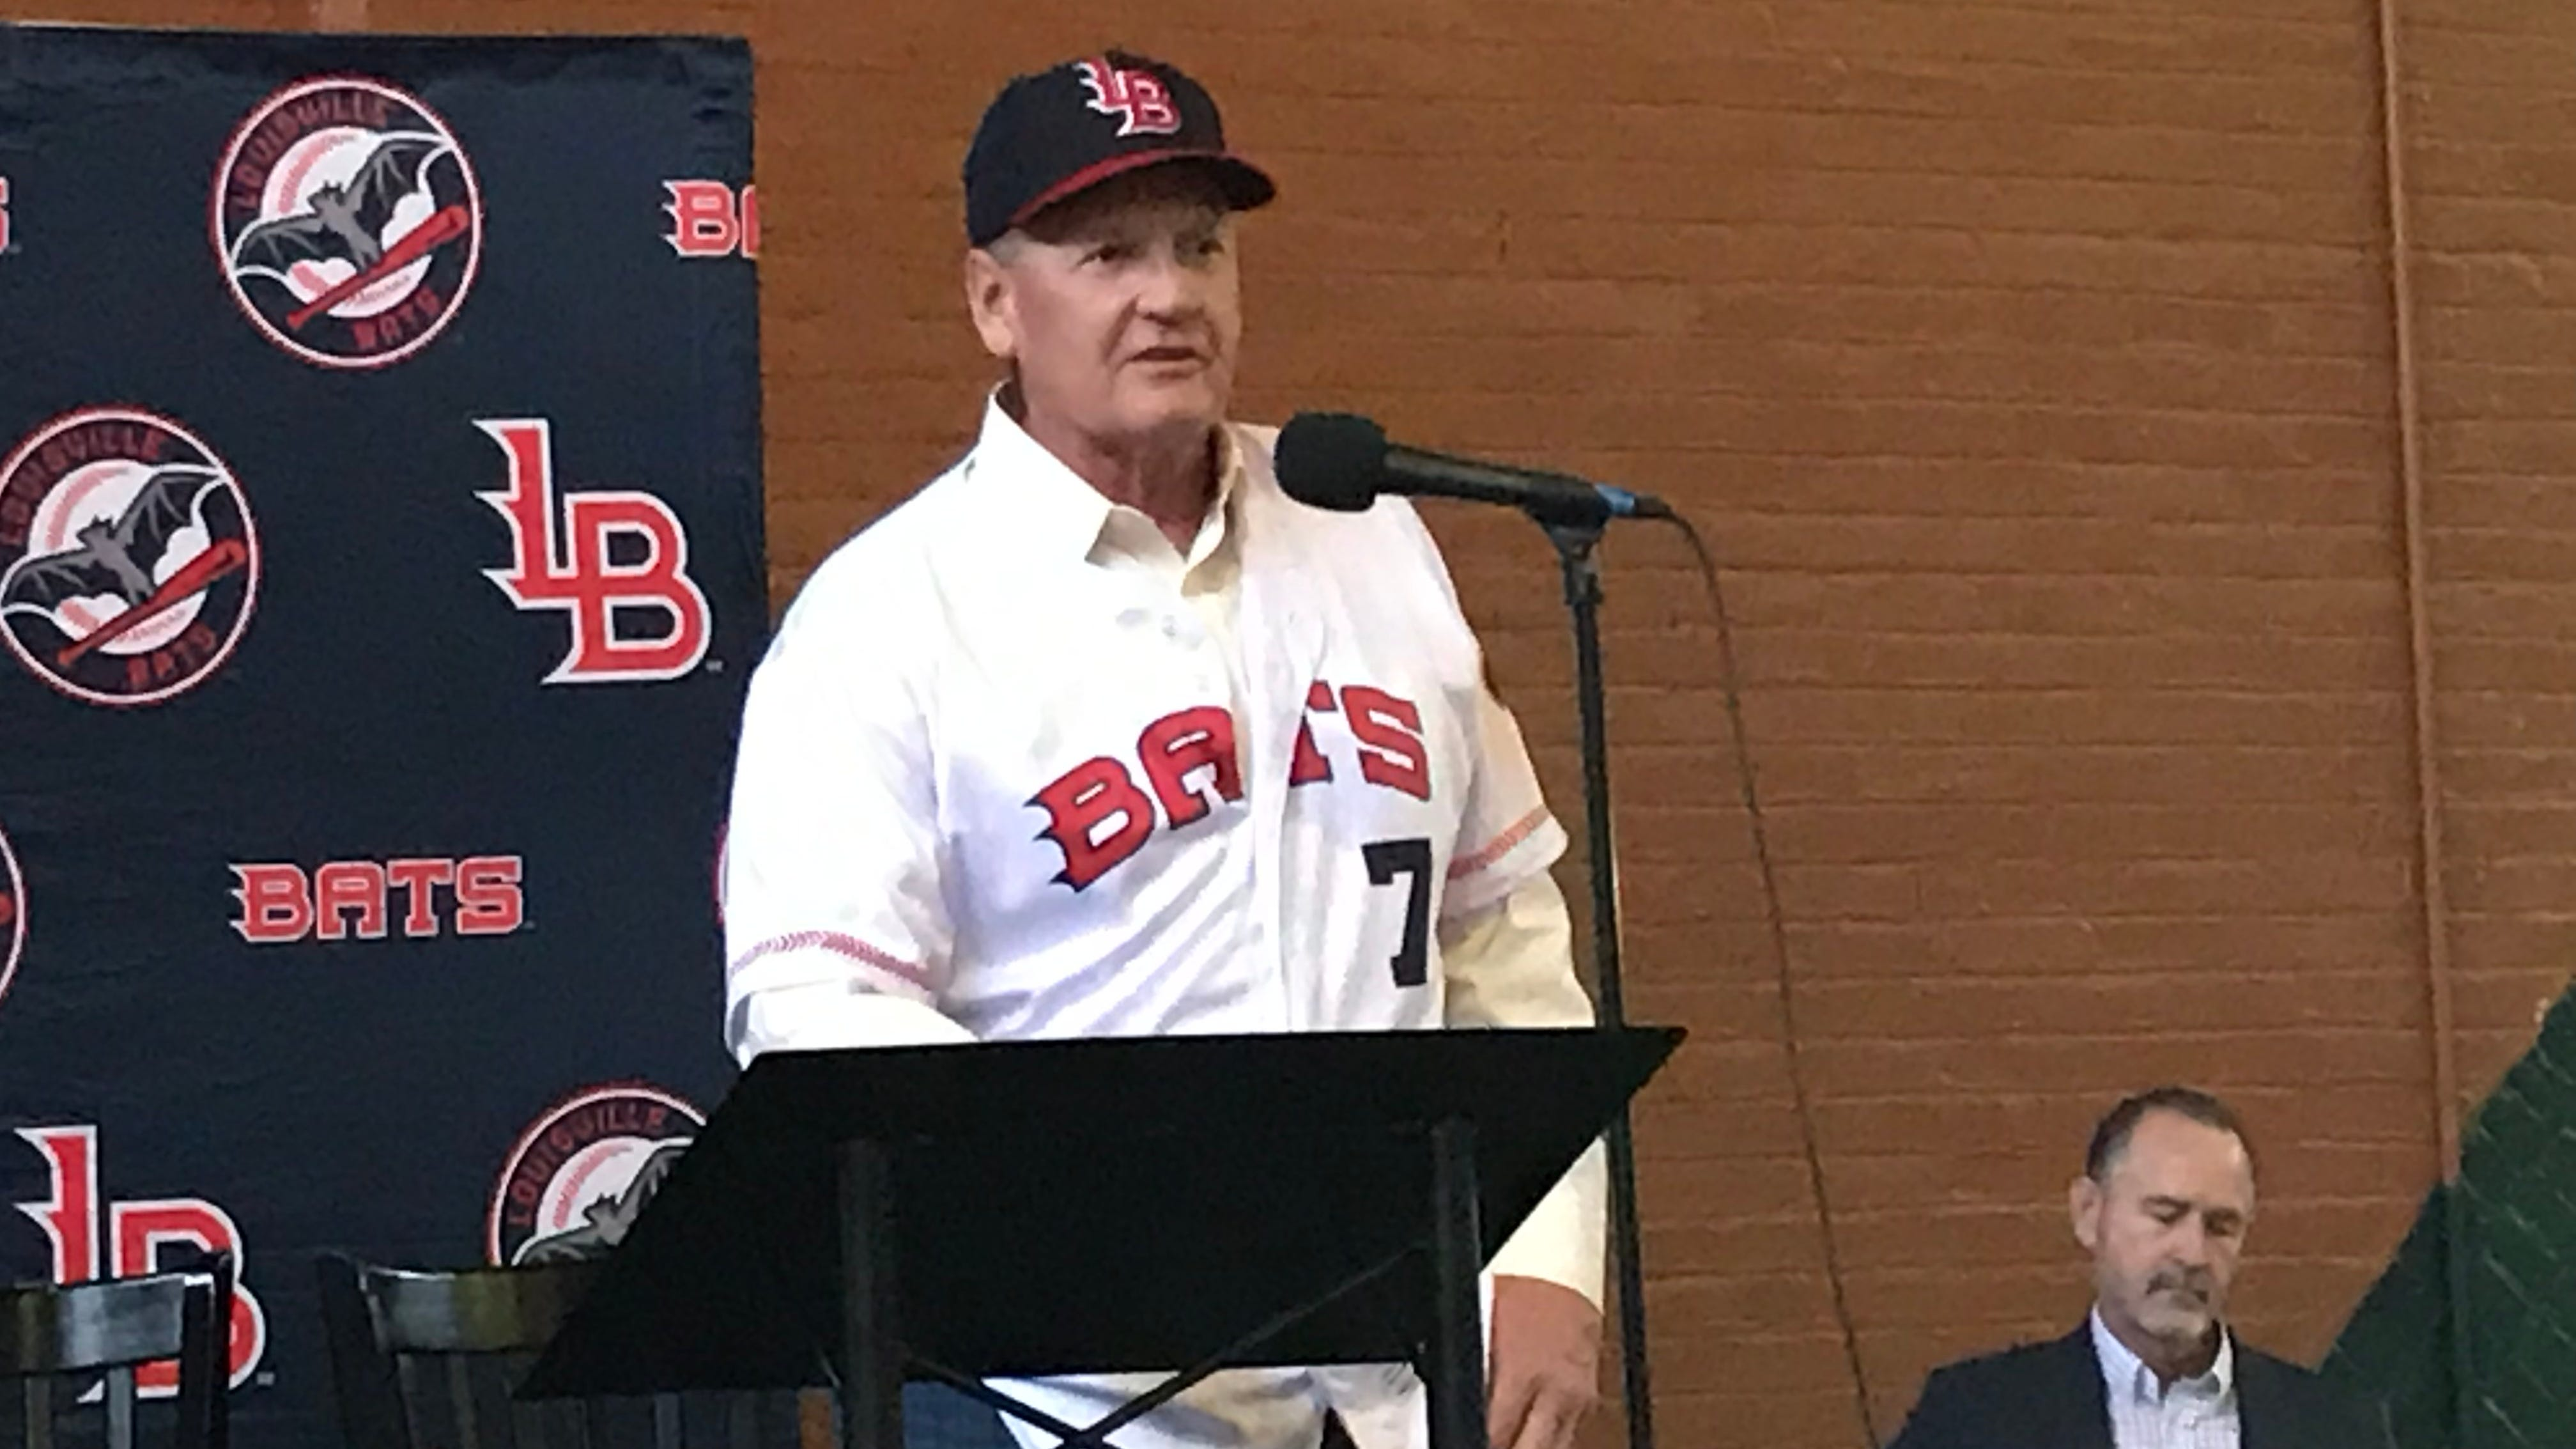 Jody Davis was introduced as the Louisville Bats' 21st manager on Feb. 7, 2019.